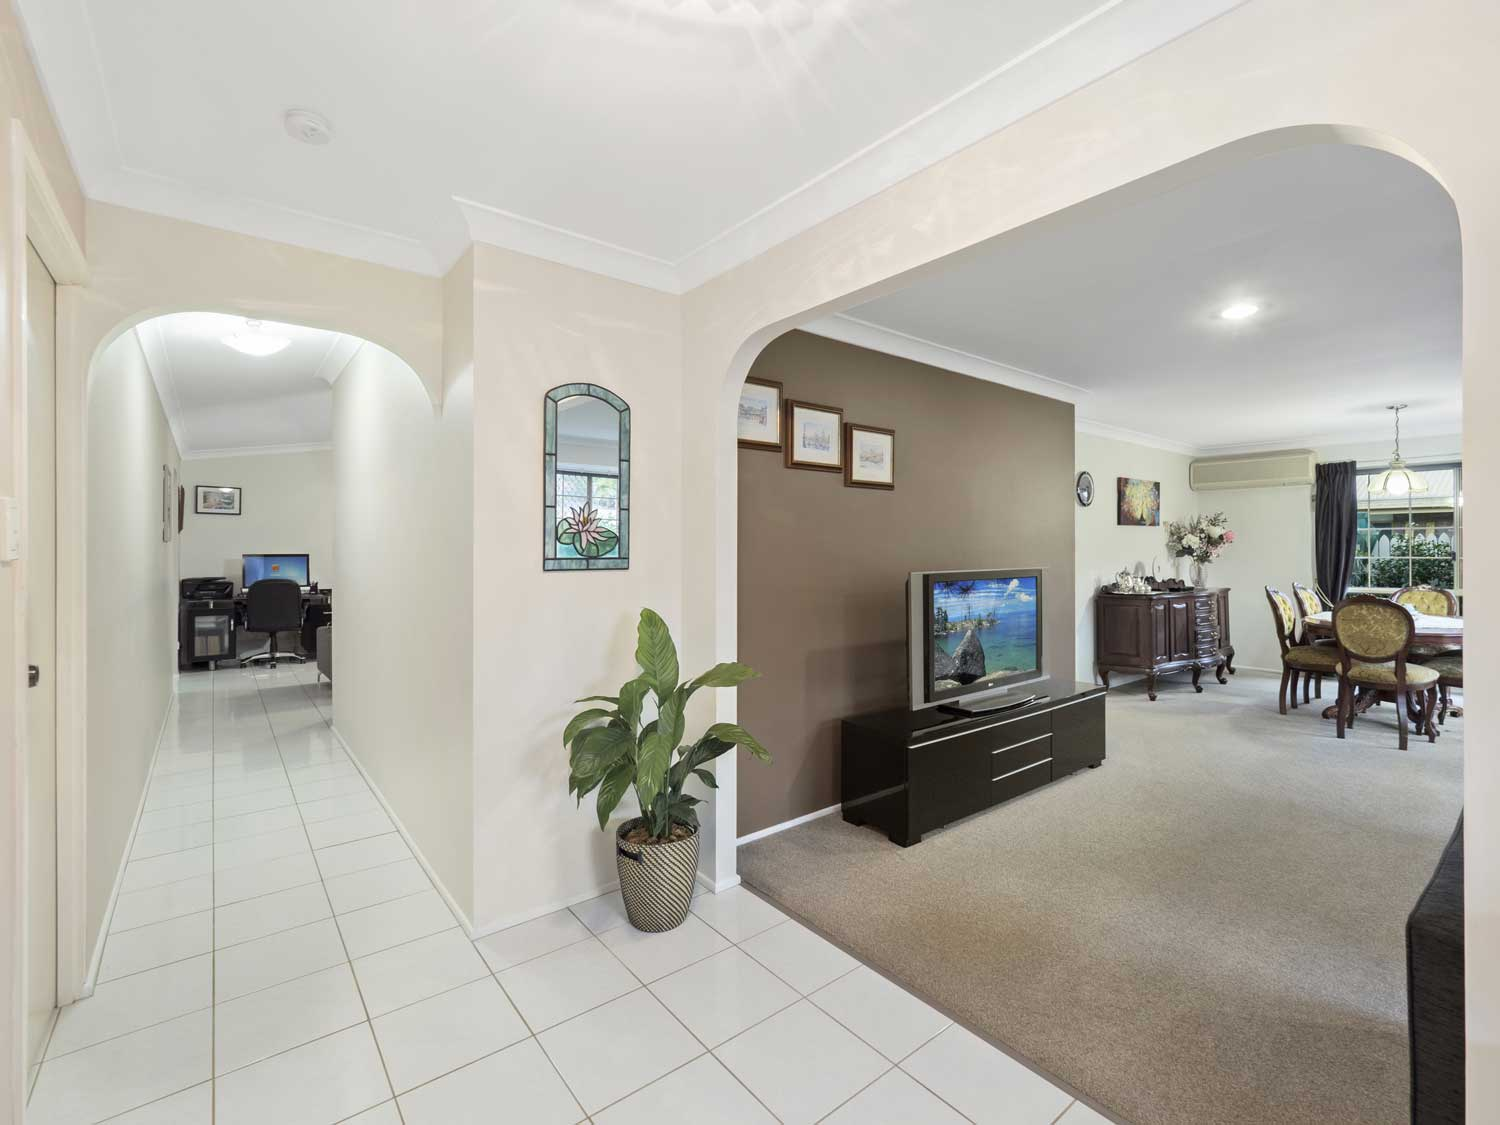 The entrance area - photographing a home for sale at Kuraby